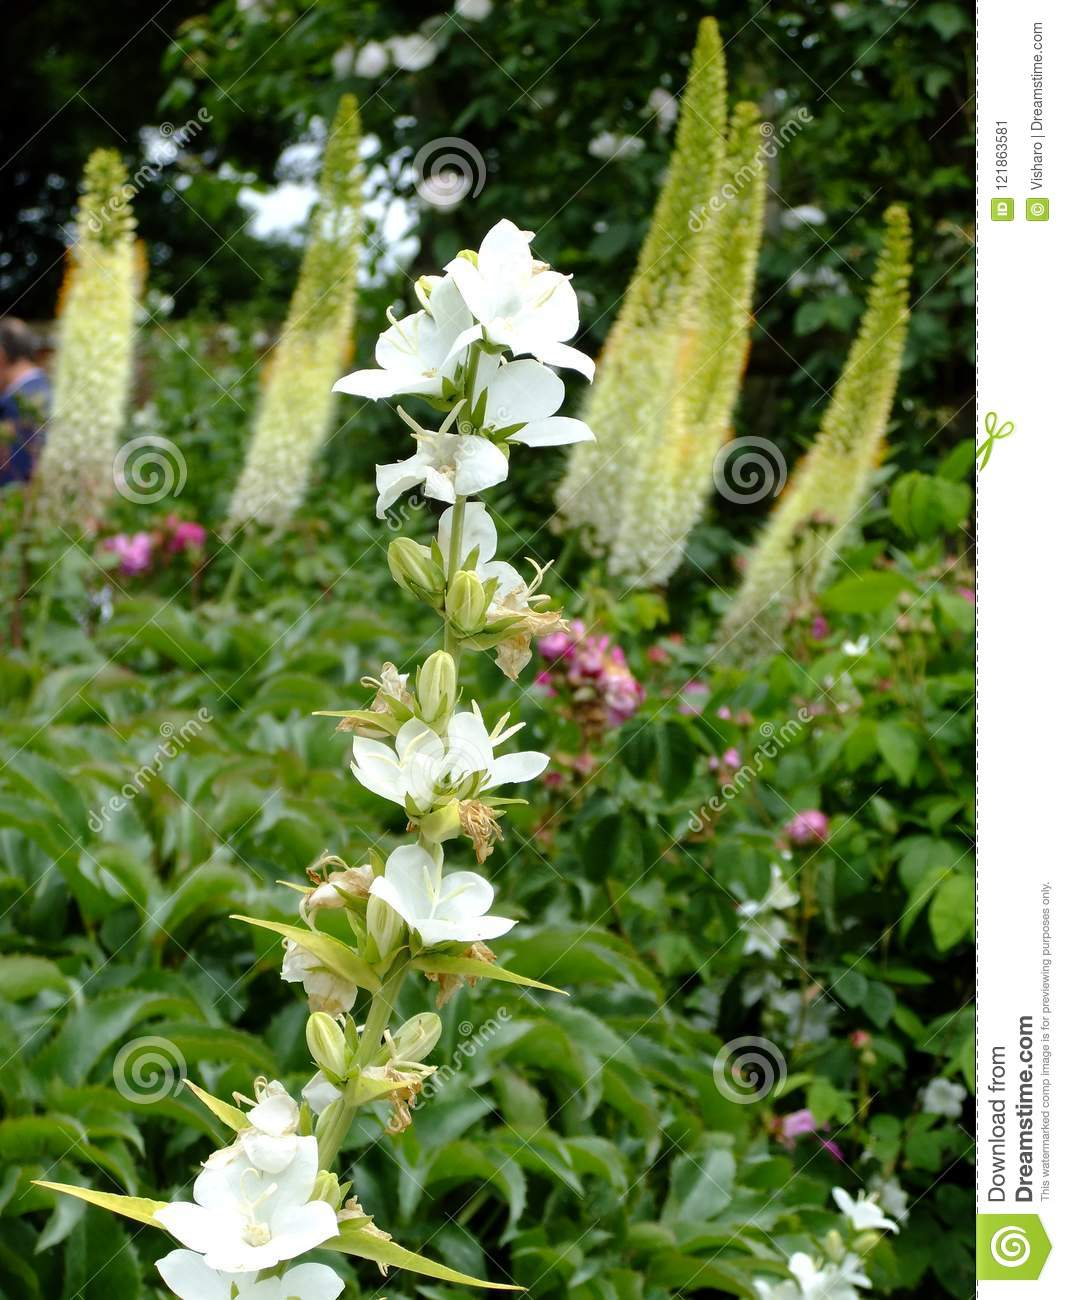 White Tall Flowers Stock Image Image Of Growing Tall 121863581